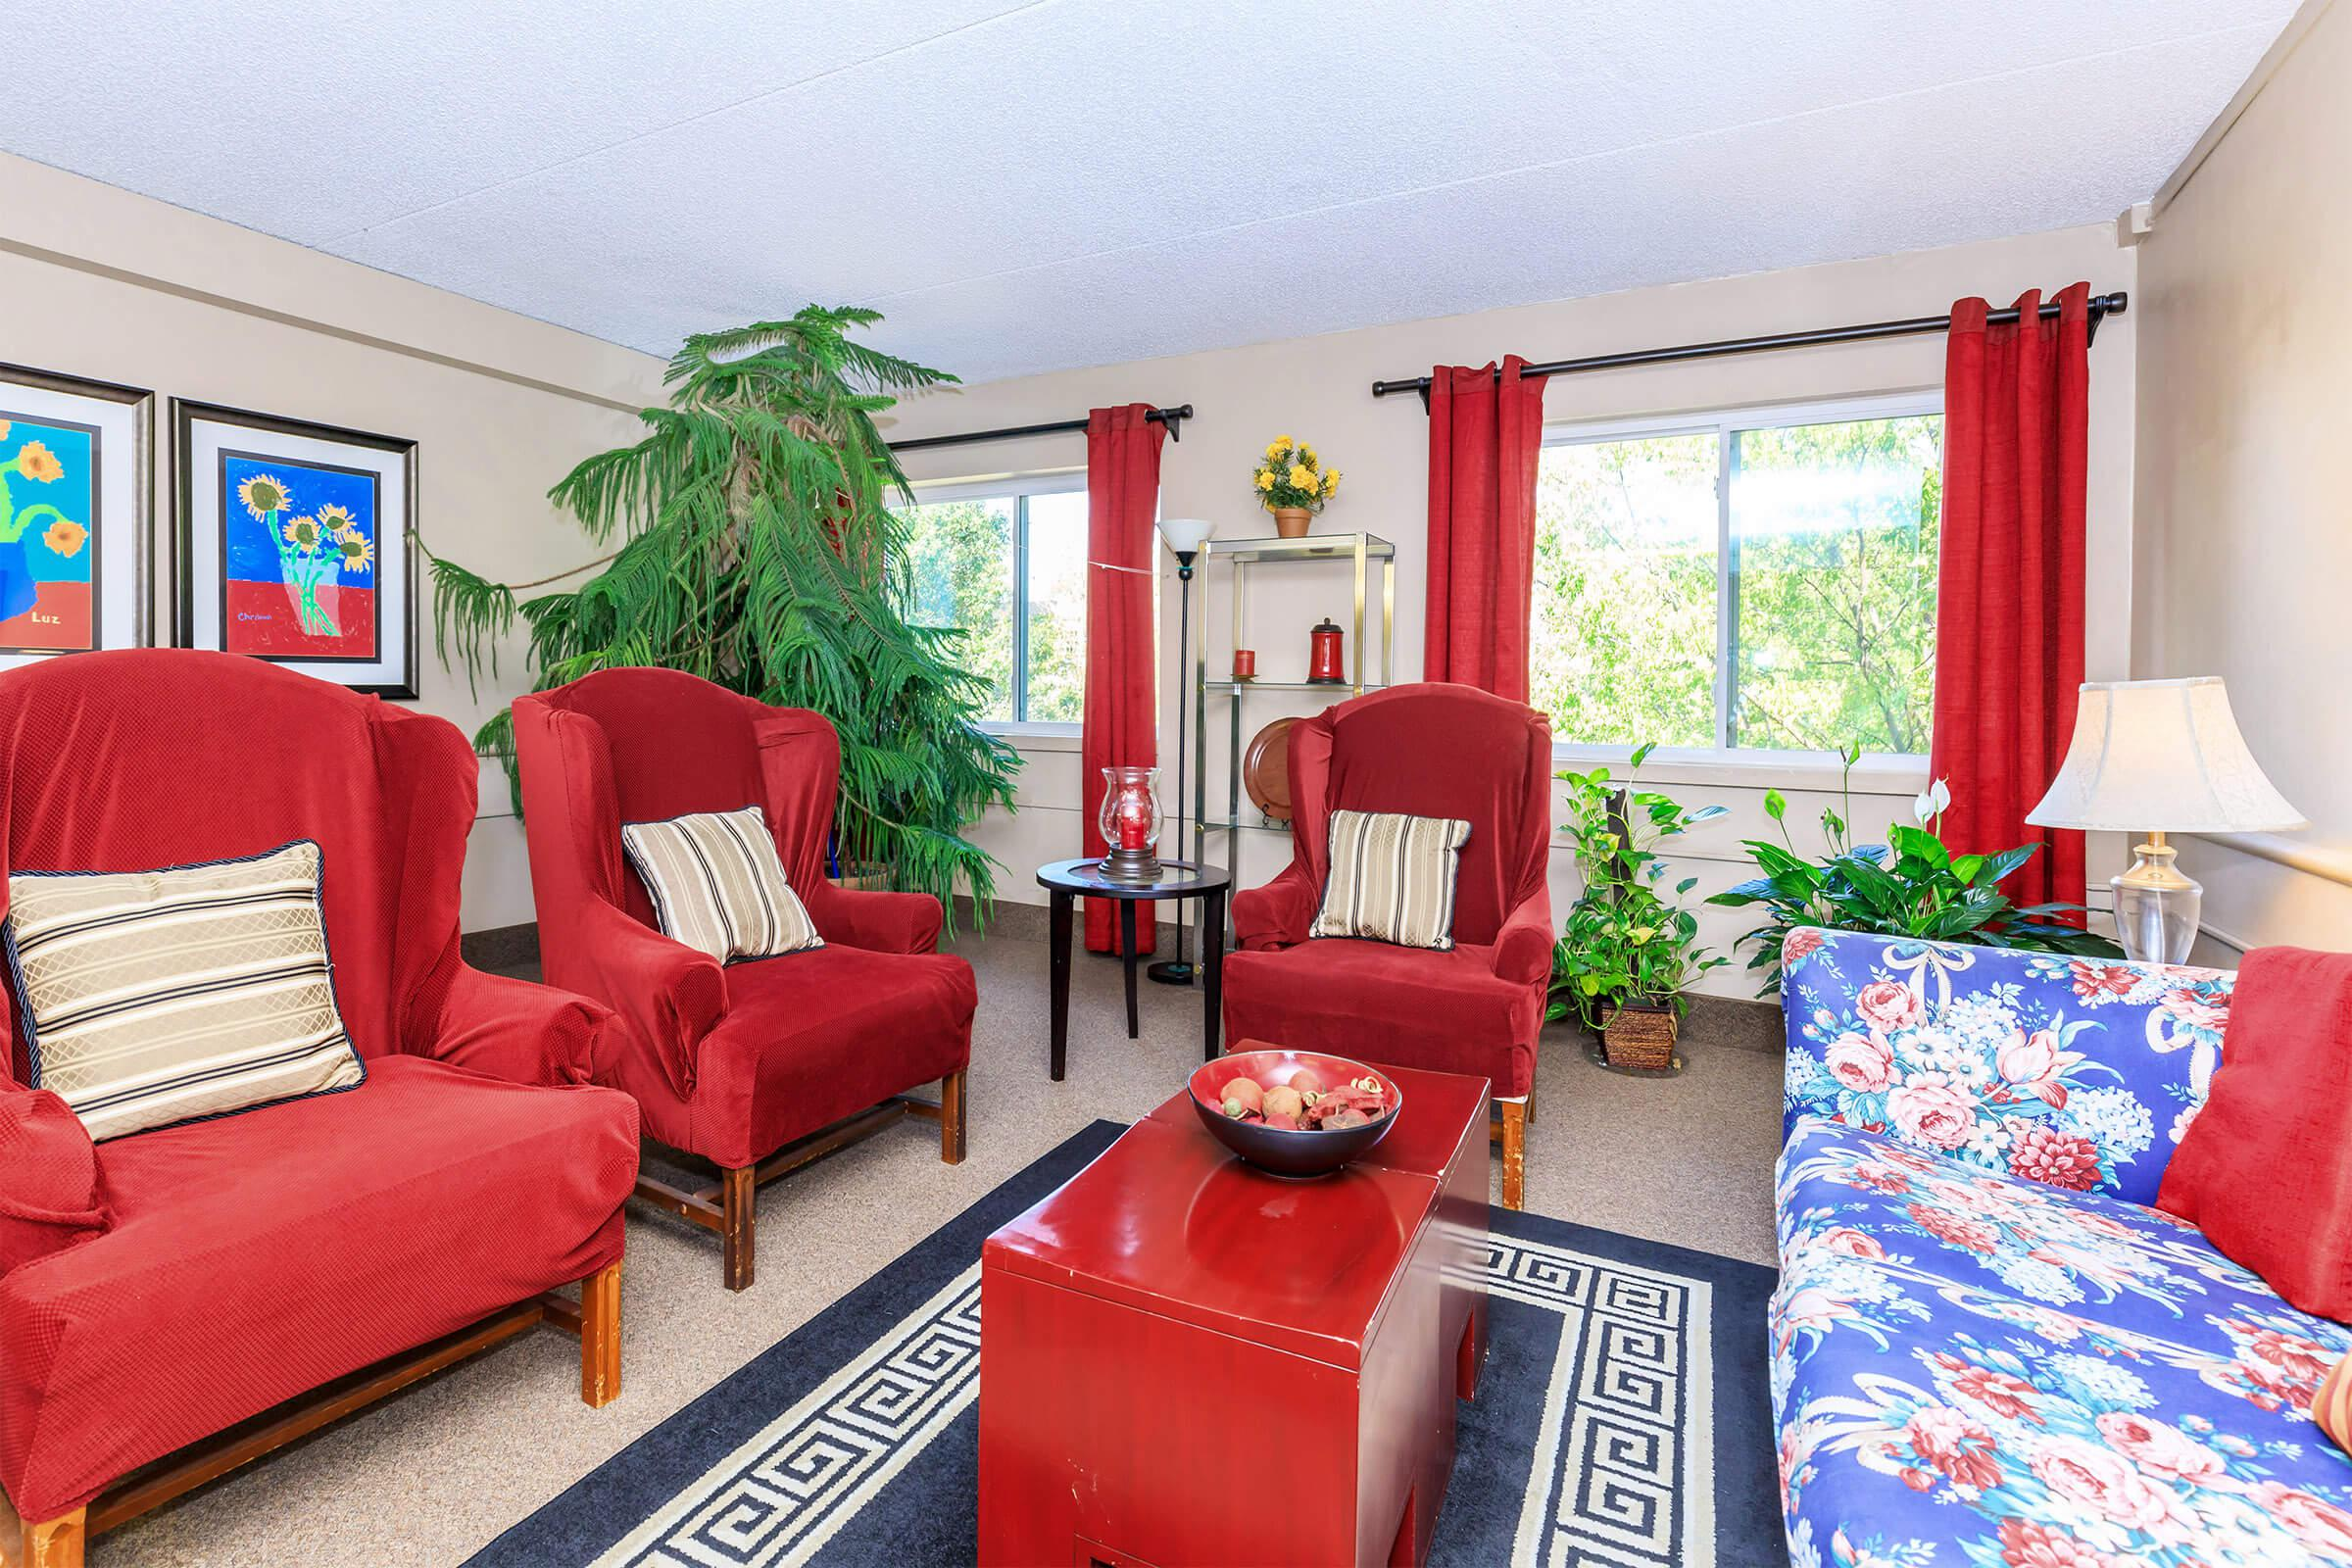 a living room filled with furniture and a red rug